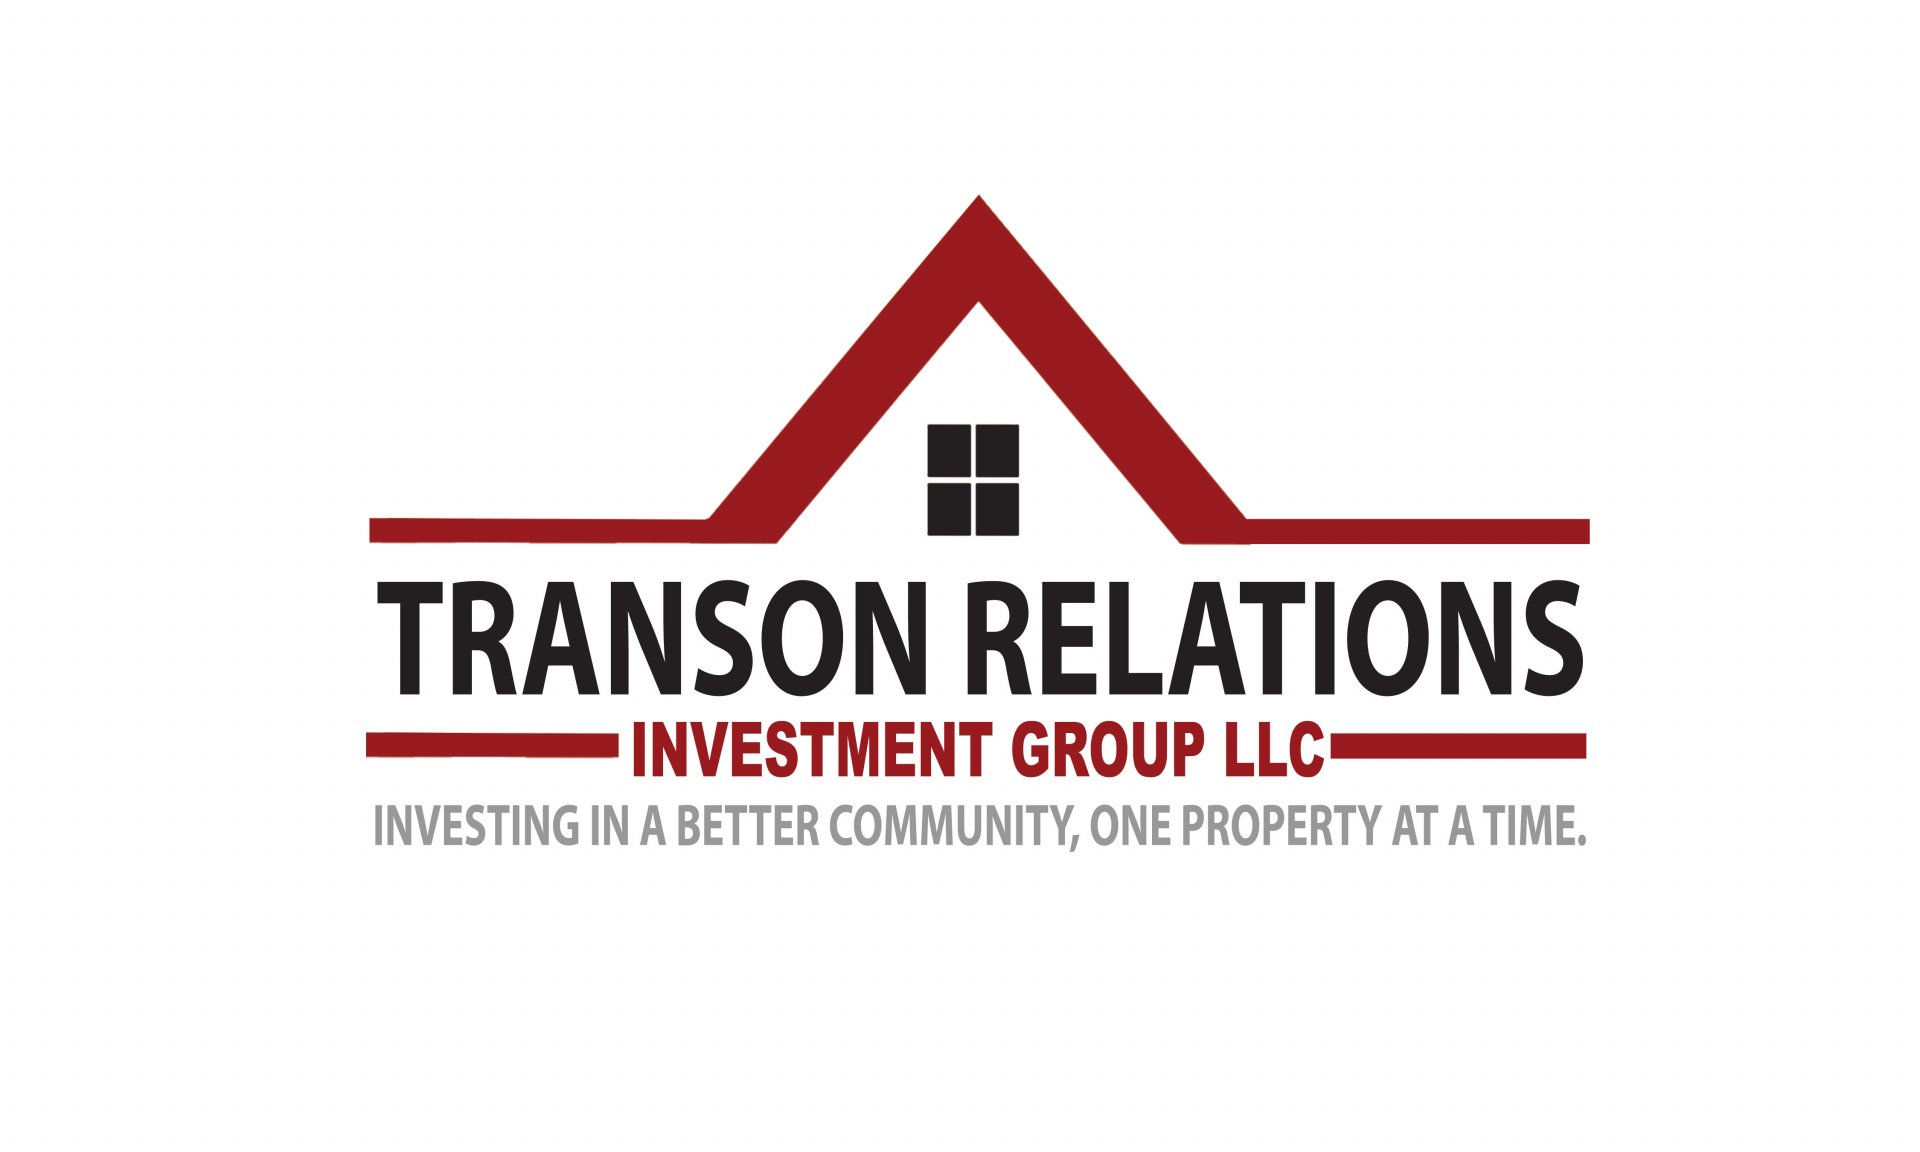 Transon Relations Investment Group LLC  logo